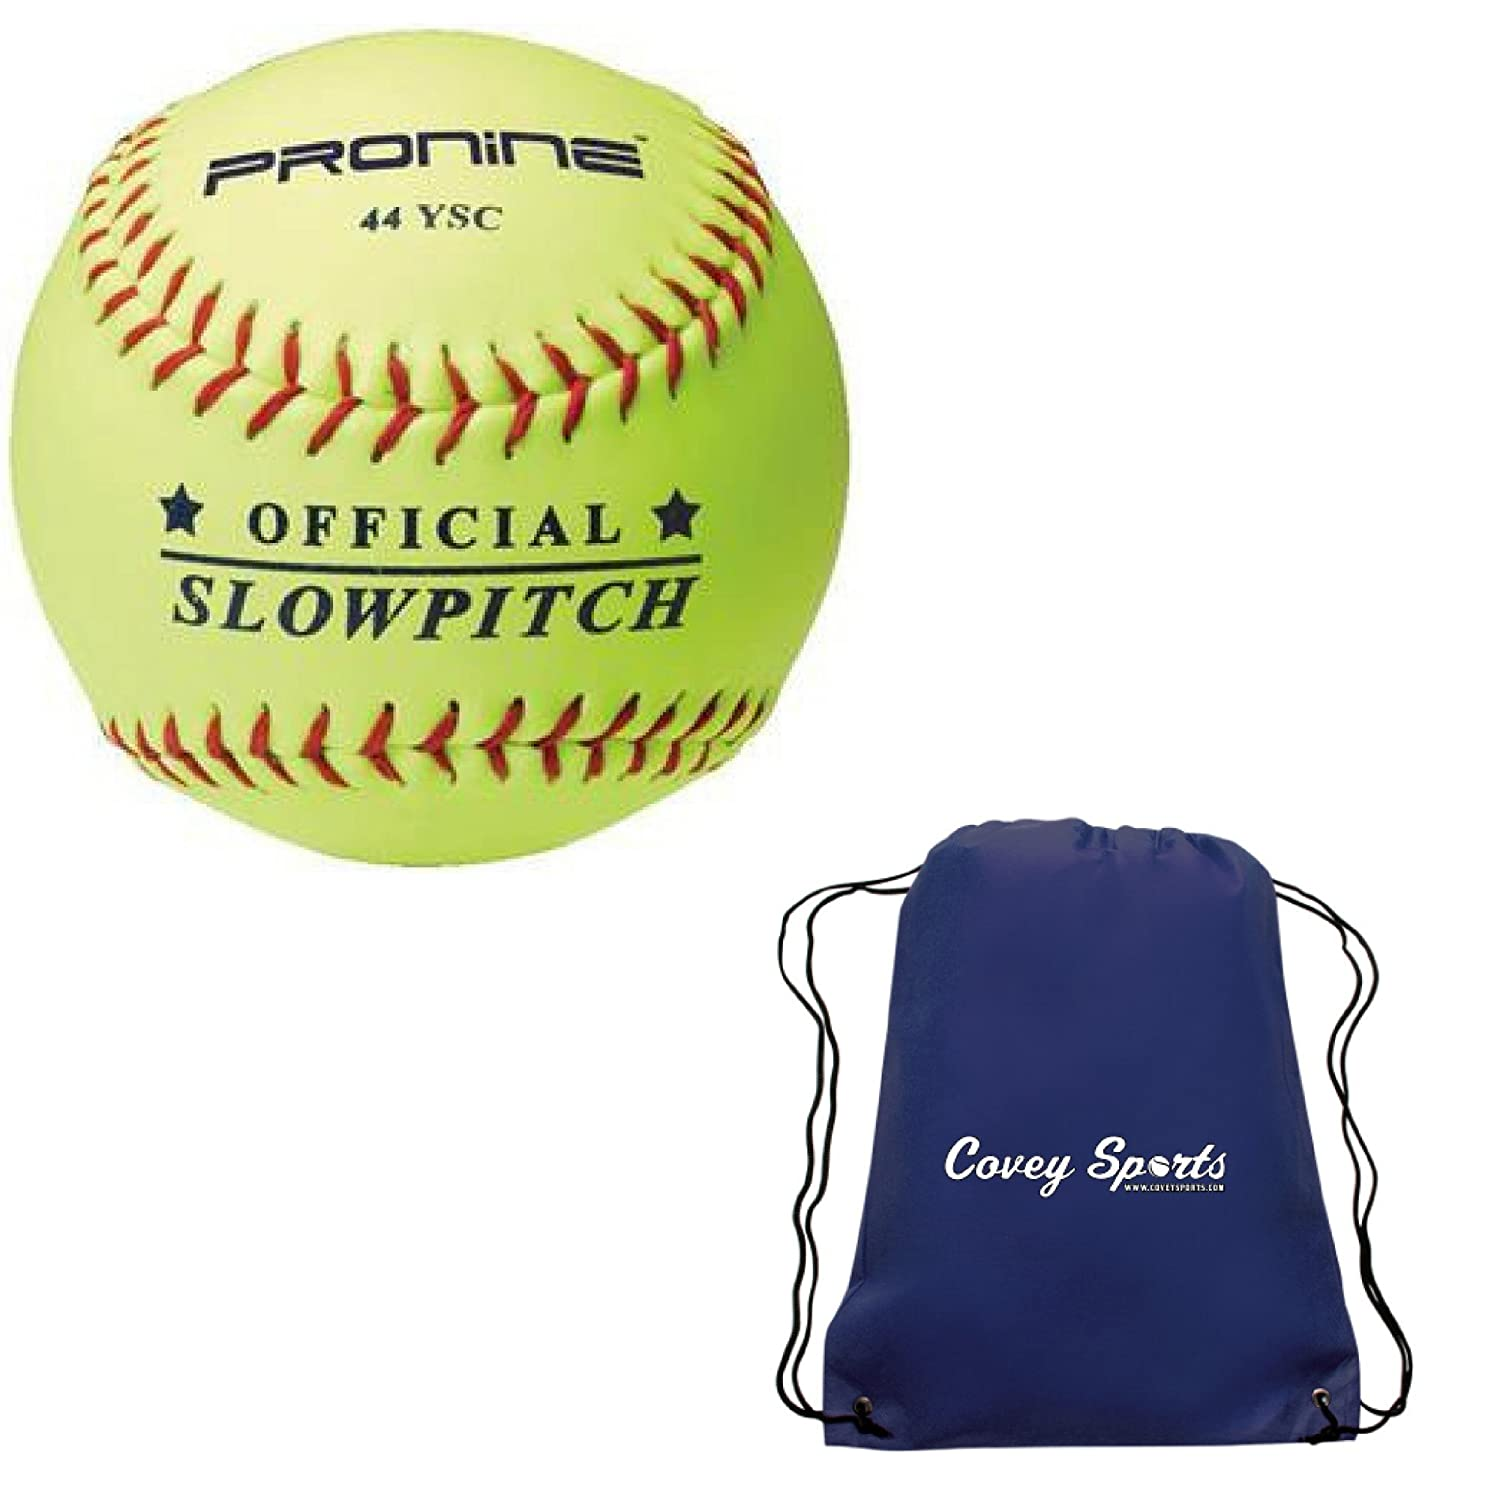 Multi-Packs ProNine Slowpitch Softballs 12 Inch .44 COR 375 LB Yellow Compression Balls Bundled with Covey Sports Bag